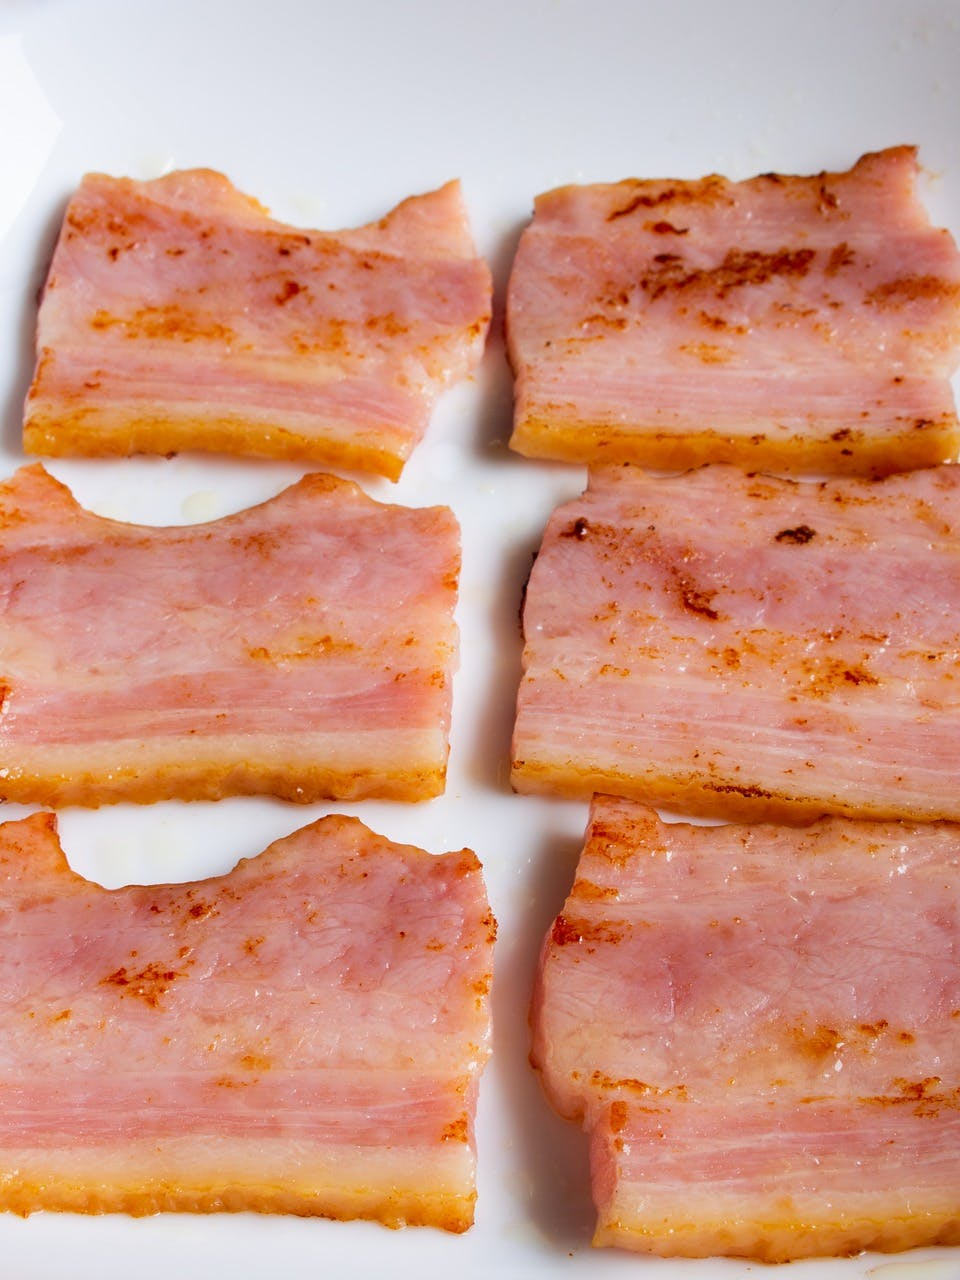 six cooked squares of bacon  on a white plate